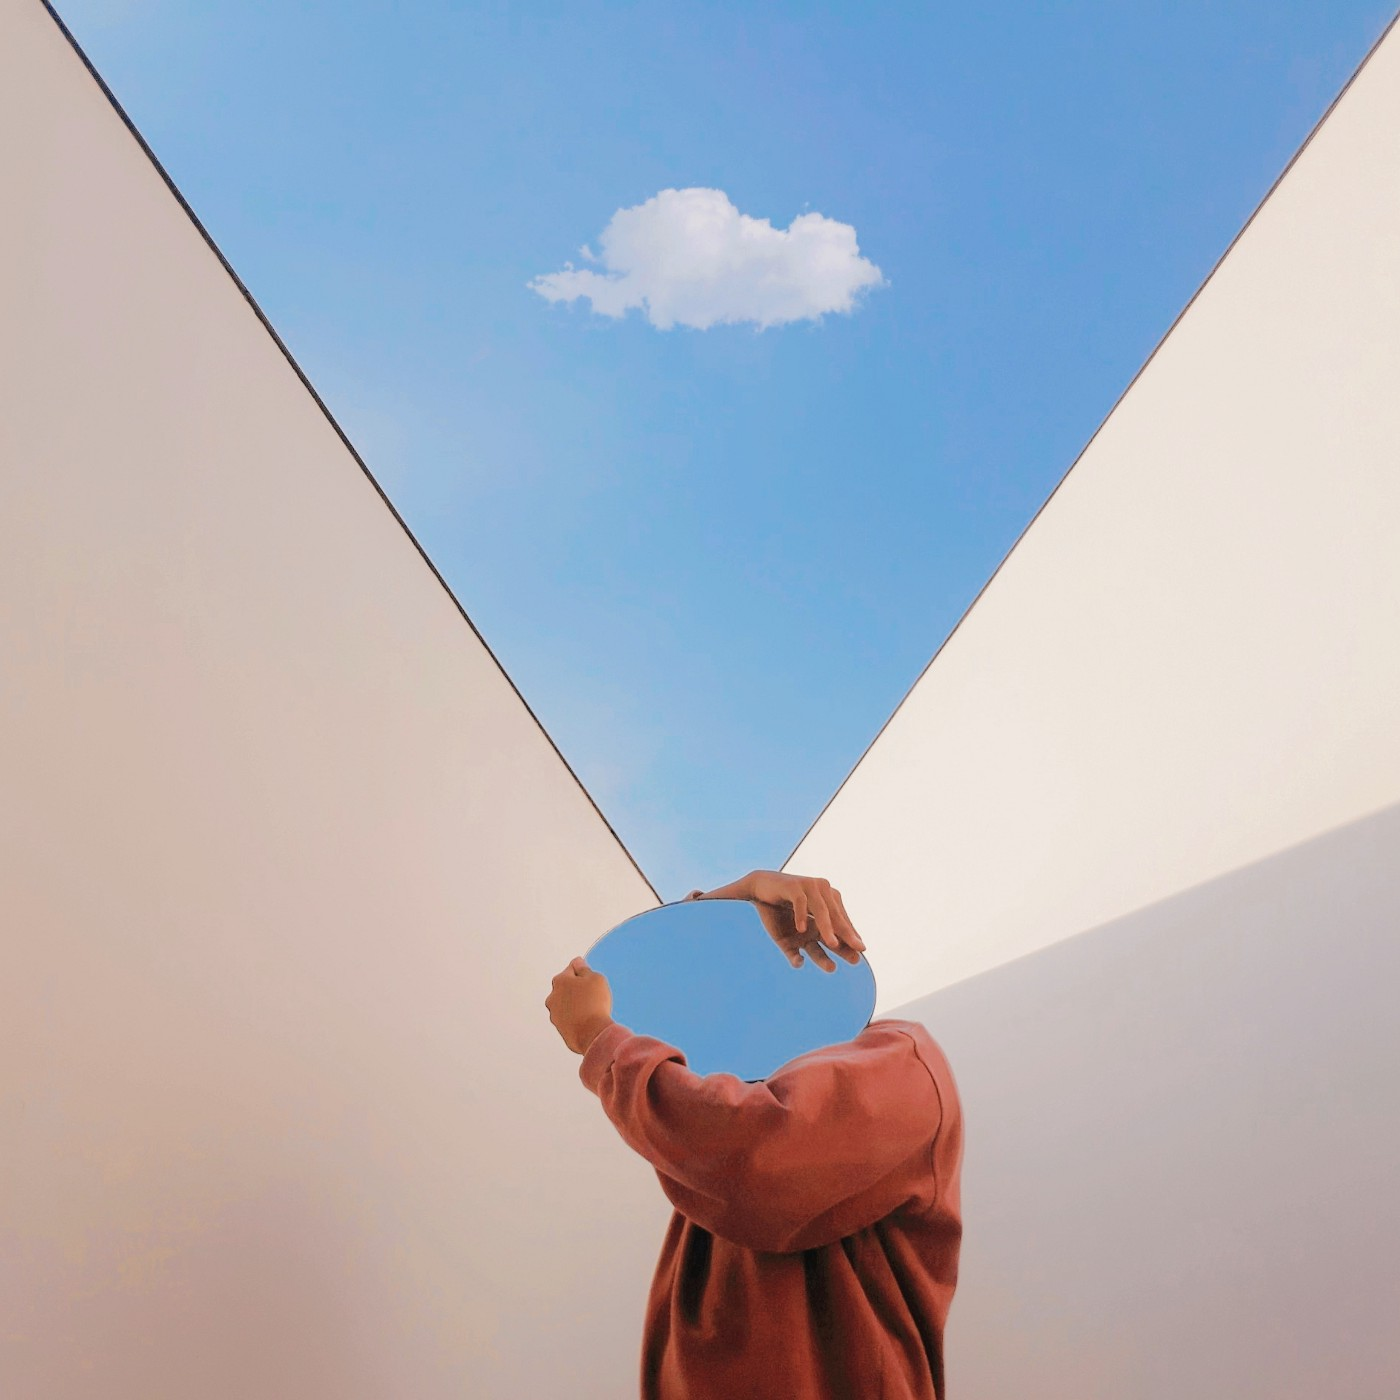 A photo of a person holding a mirror that reflects the blue sky. The mirror is covering their face.